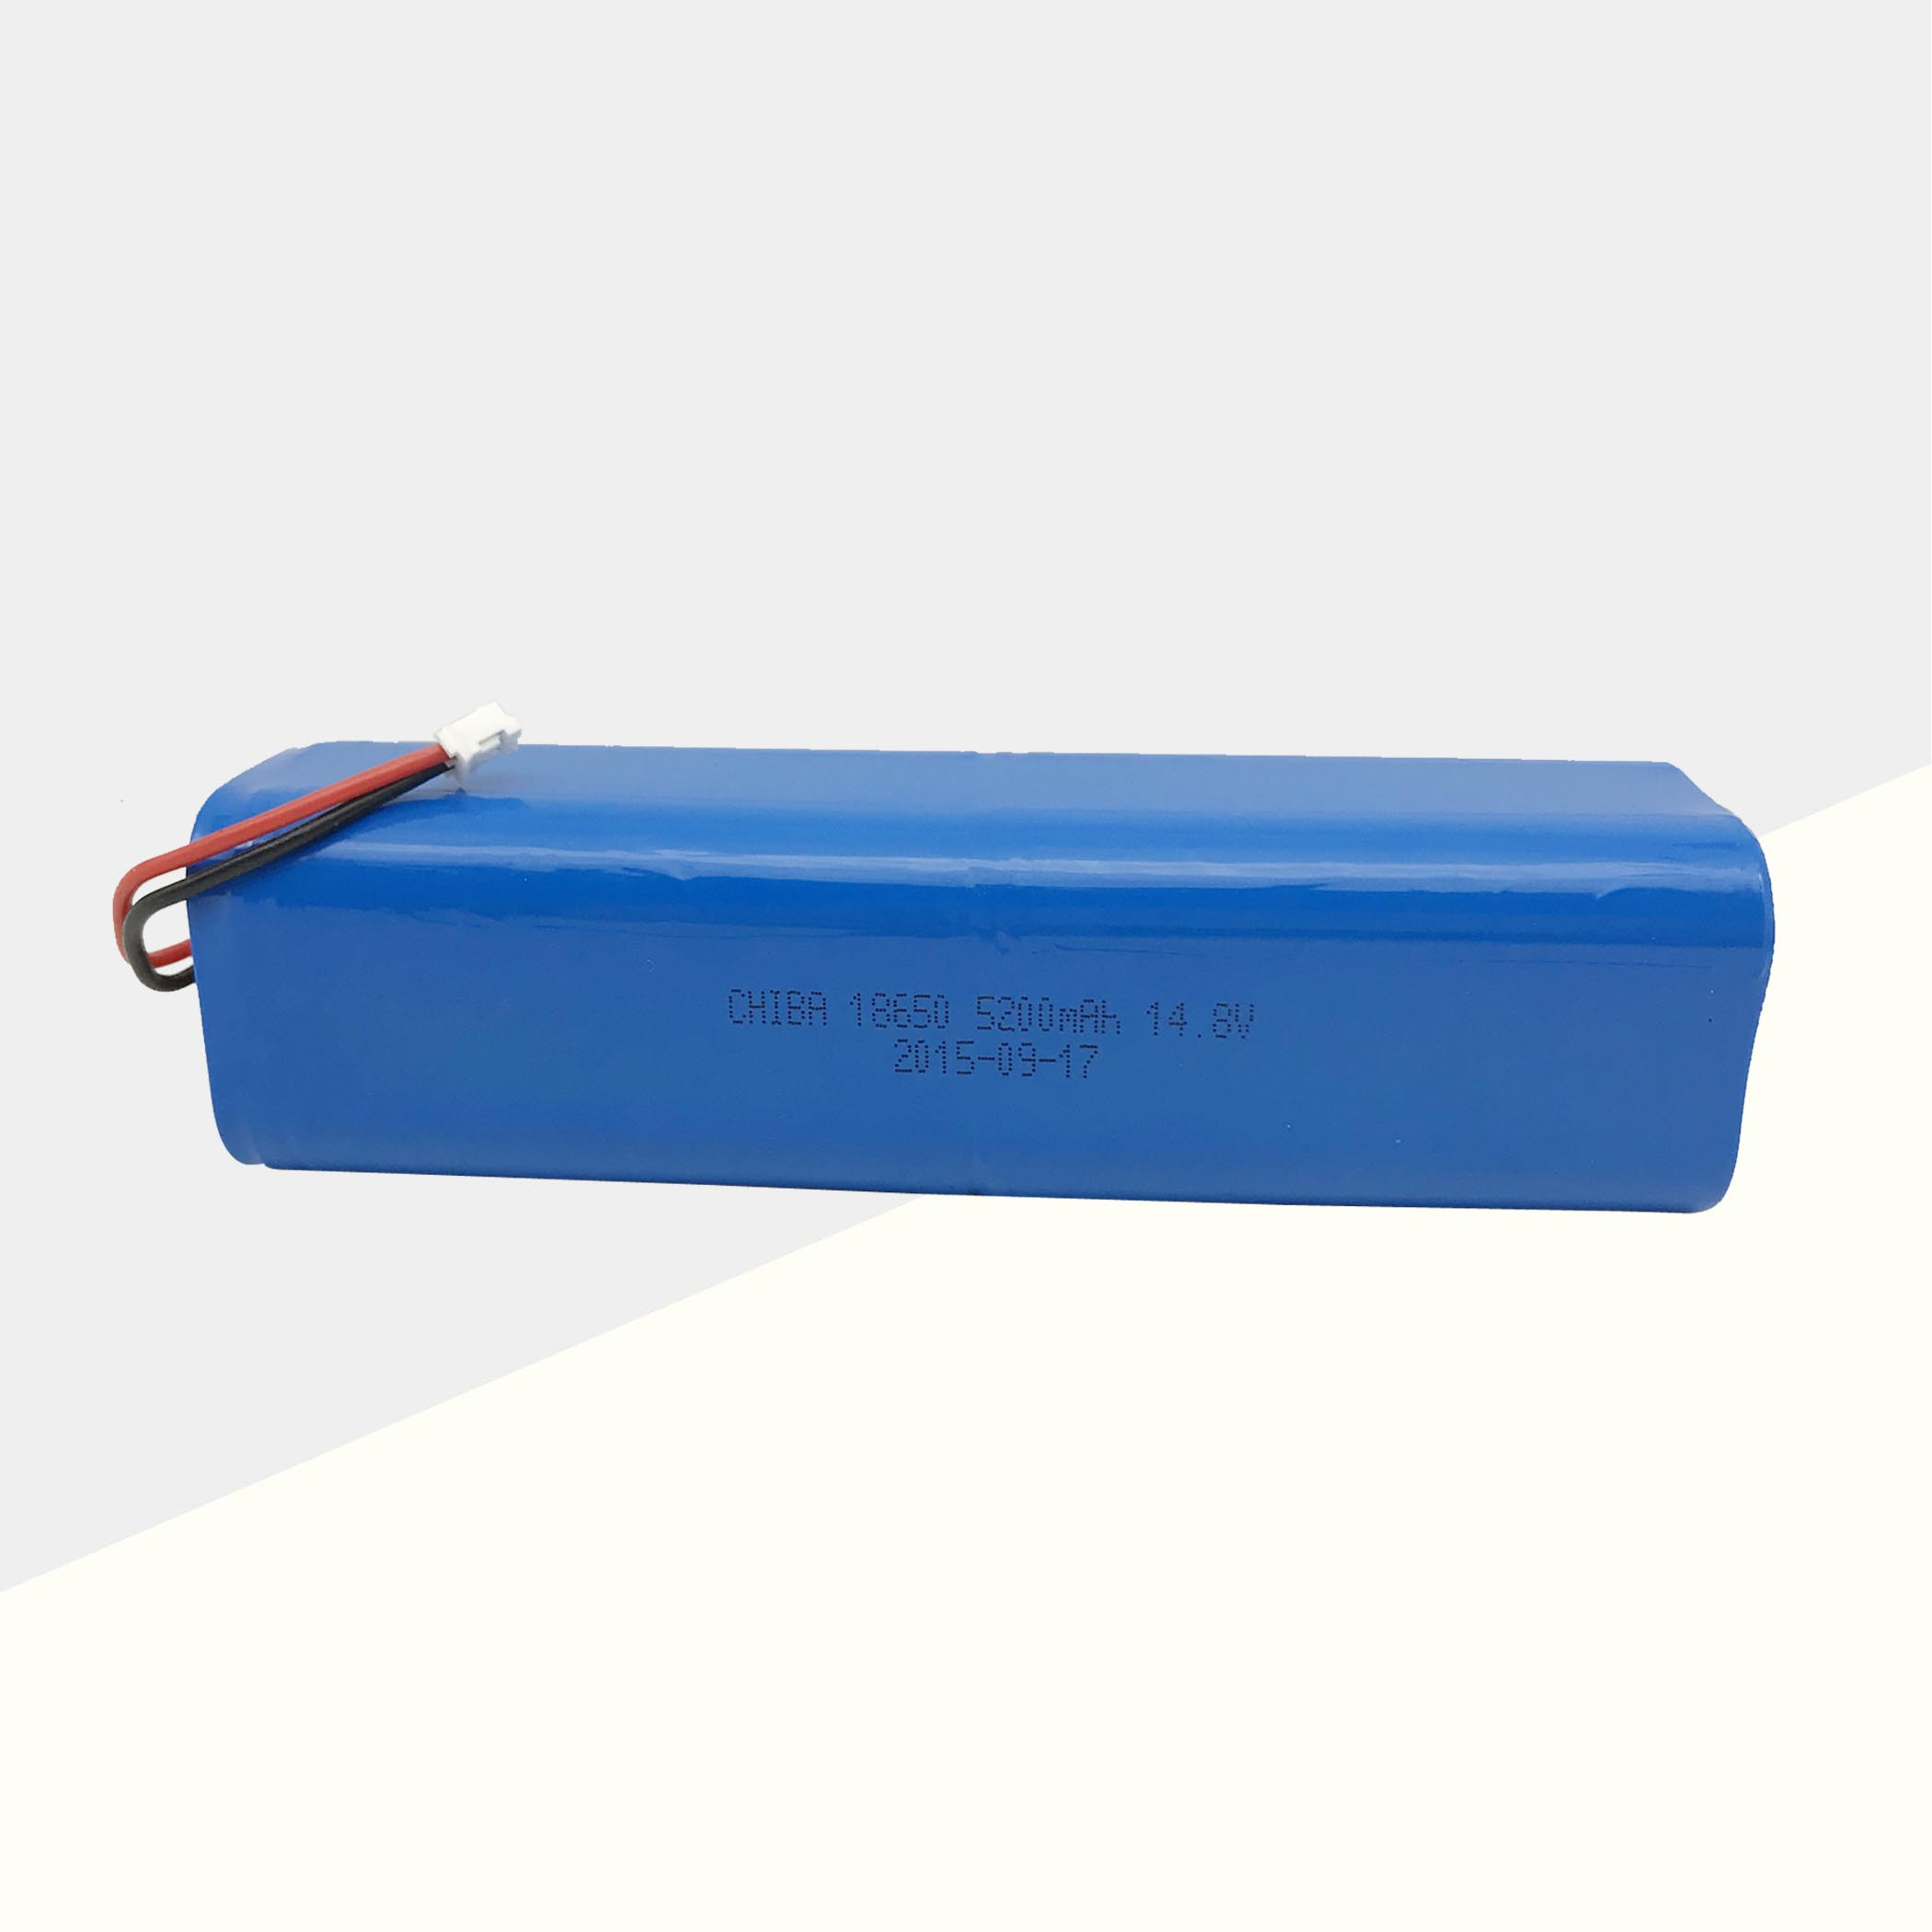 14.8V 5200mAh 4S2P Rechargeable Li-ion Battery Pack NO.1006